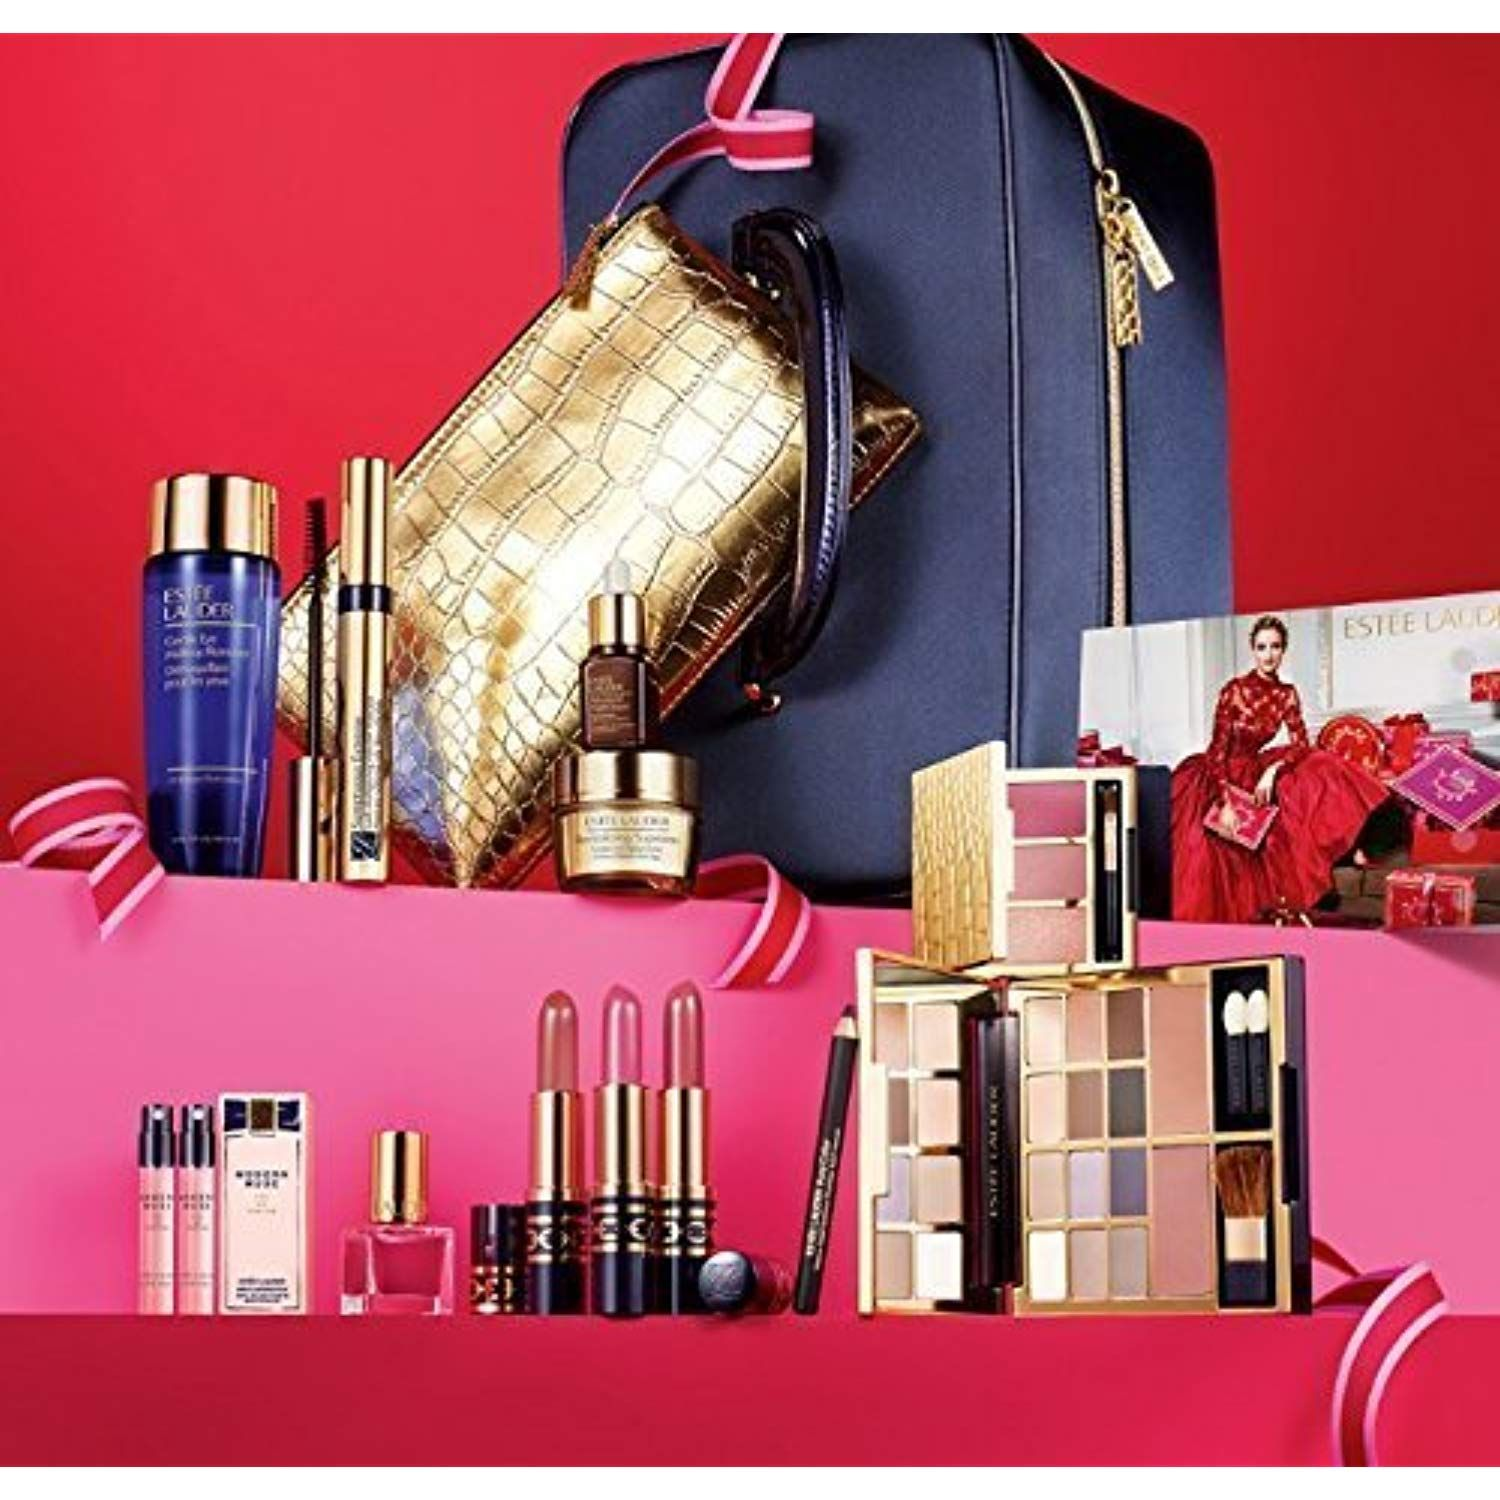 Estee Lauder 2014 Blockbuster Luxe Color New Limited Edition Makeup Skincare Gift Set Be Sure To Che Skincare Gift Set Perfect Christmas Gifts Estee Lauder